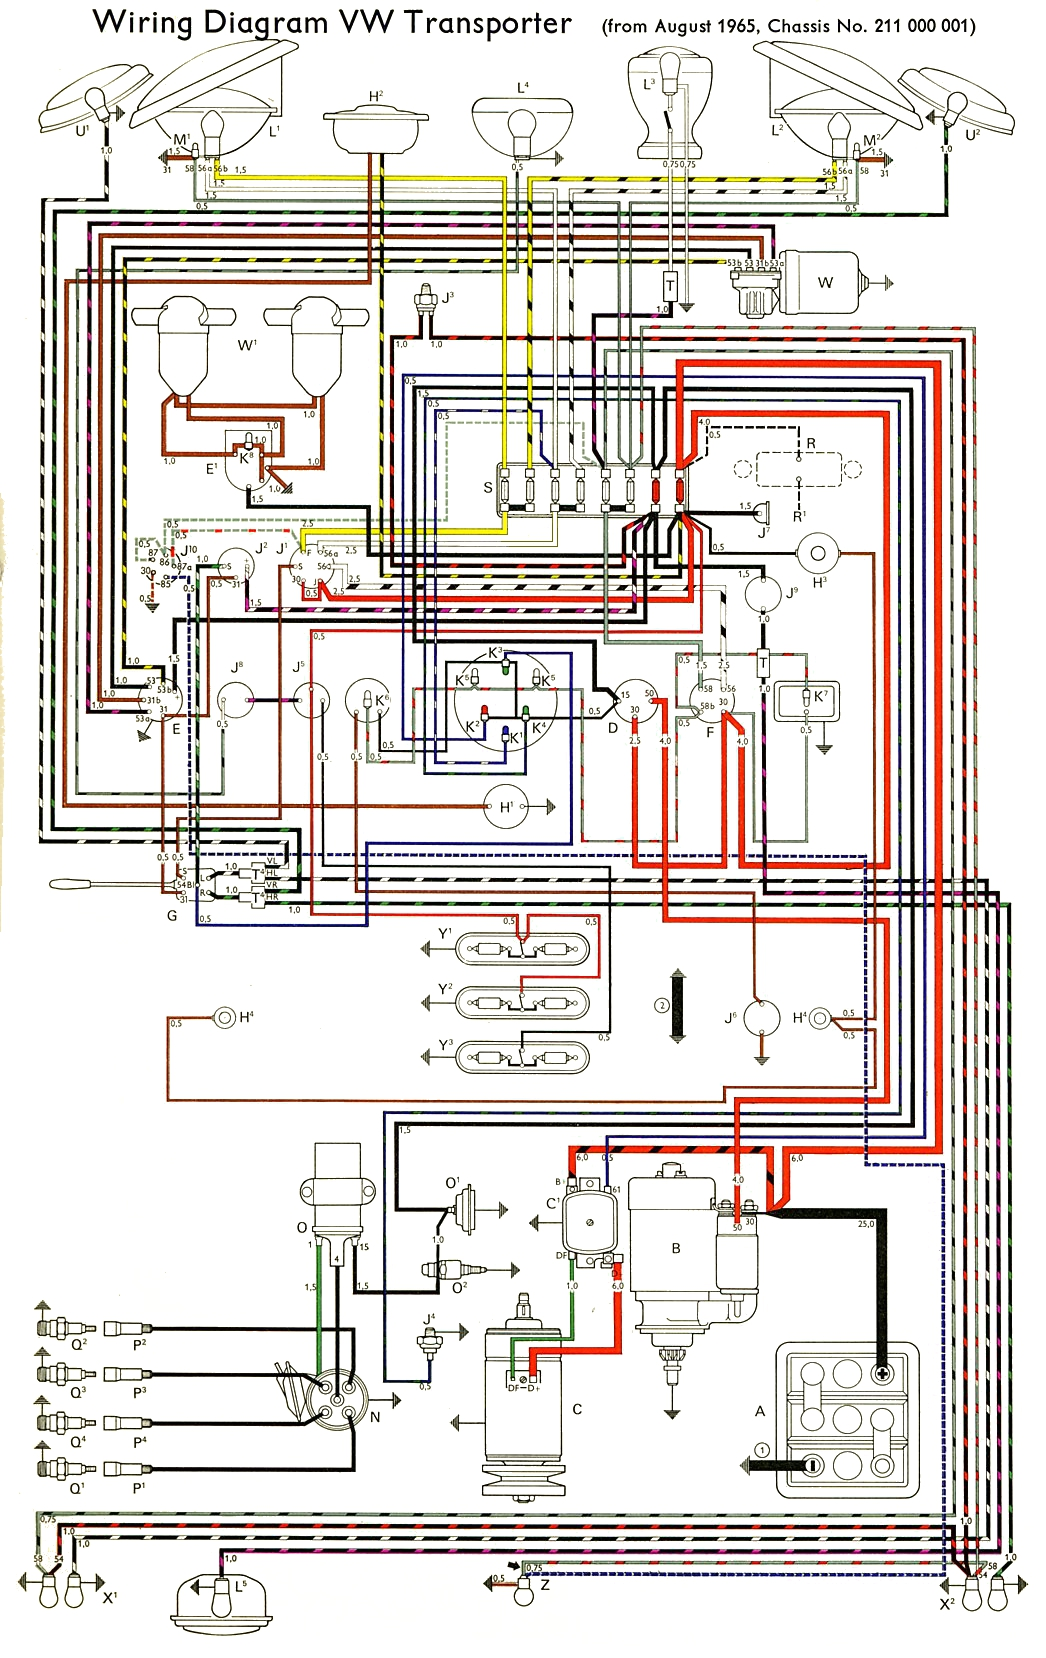 bus_66 electrical wiring diagrams beetle 1971 electrical wiring 1971 vw beetle wiring diagram at panicattacktreatment.co